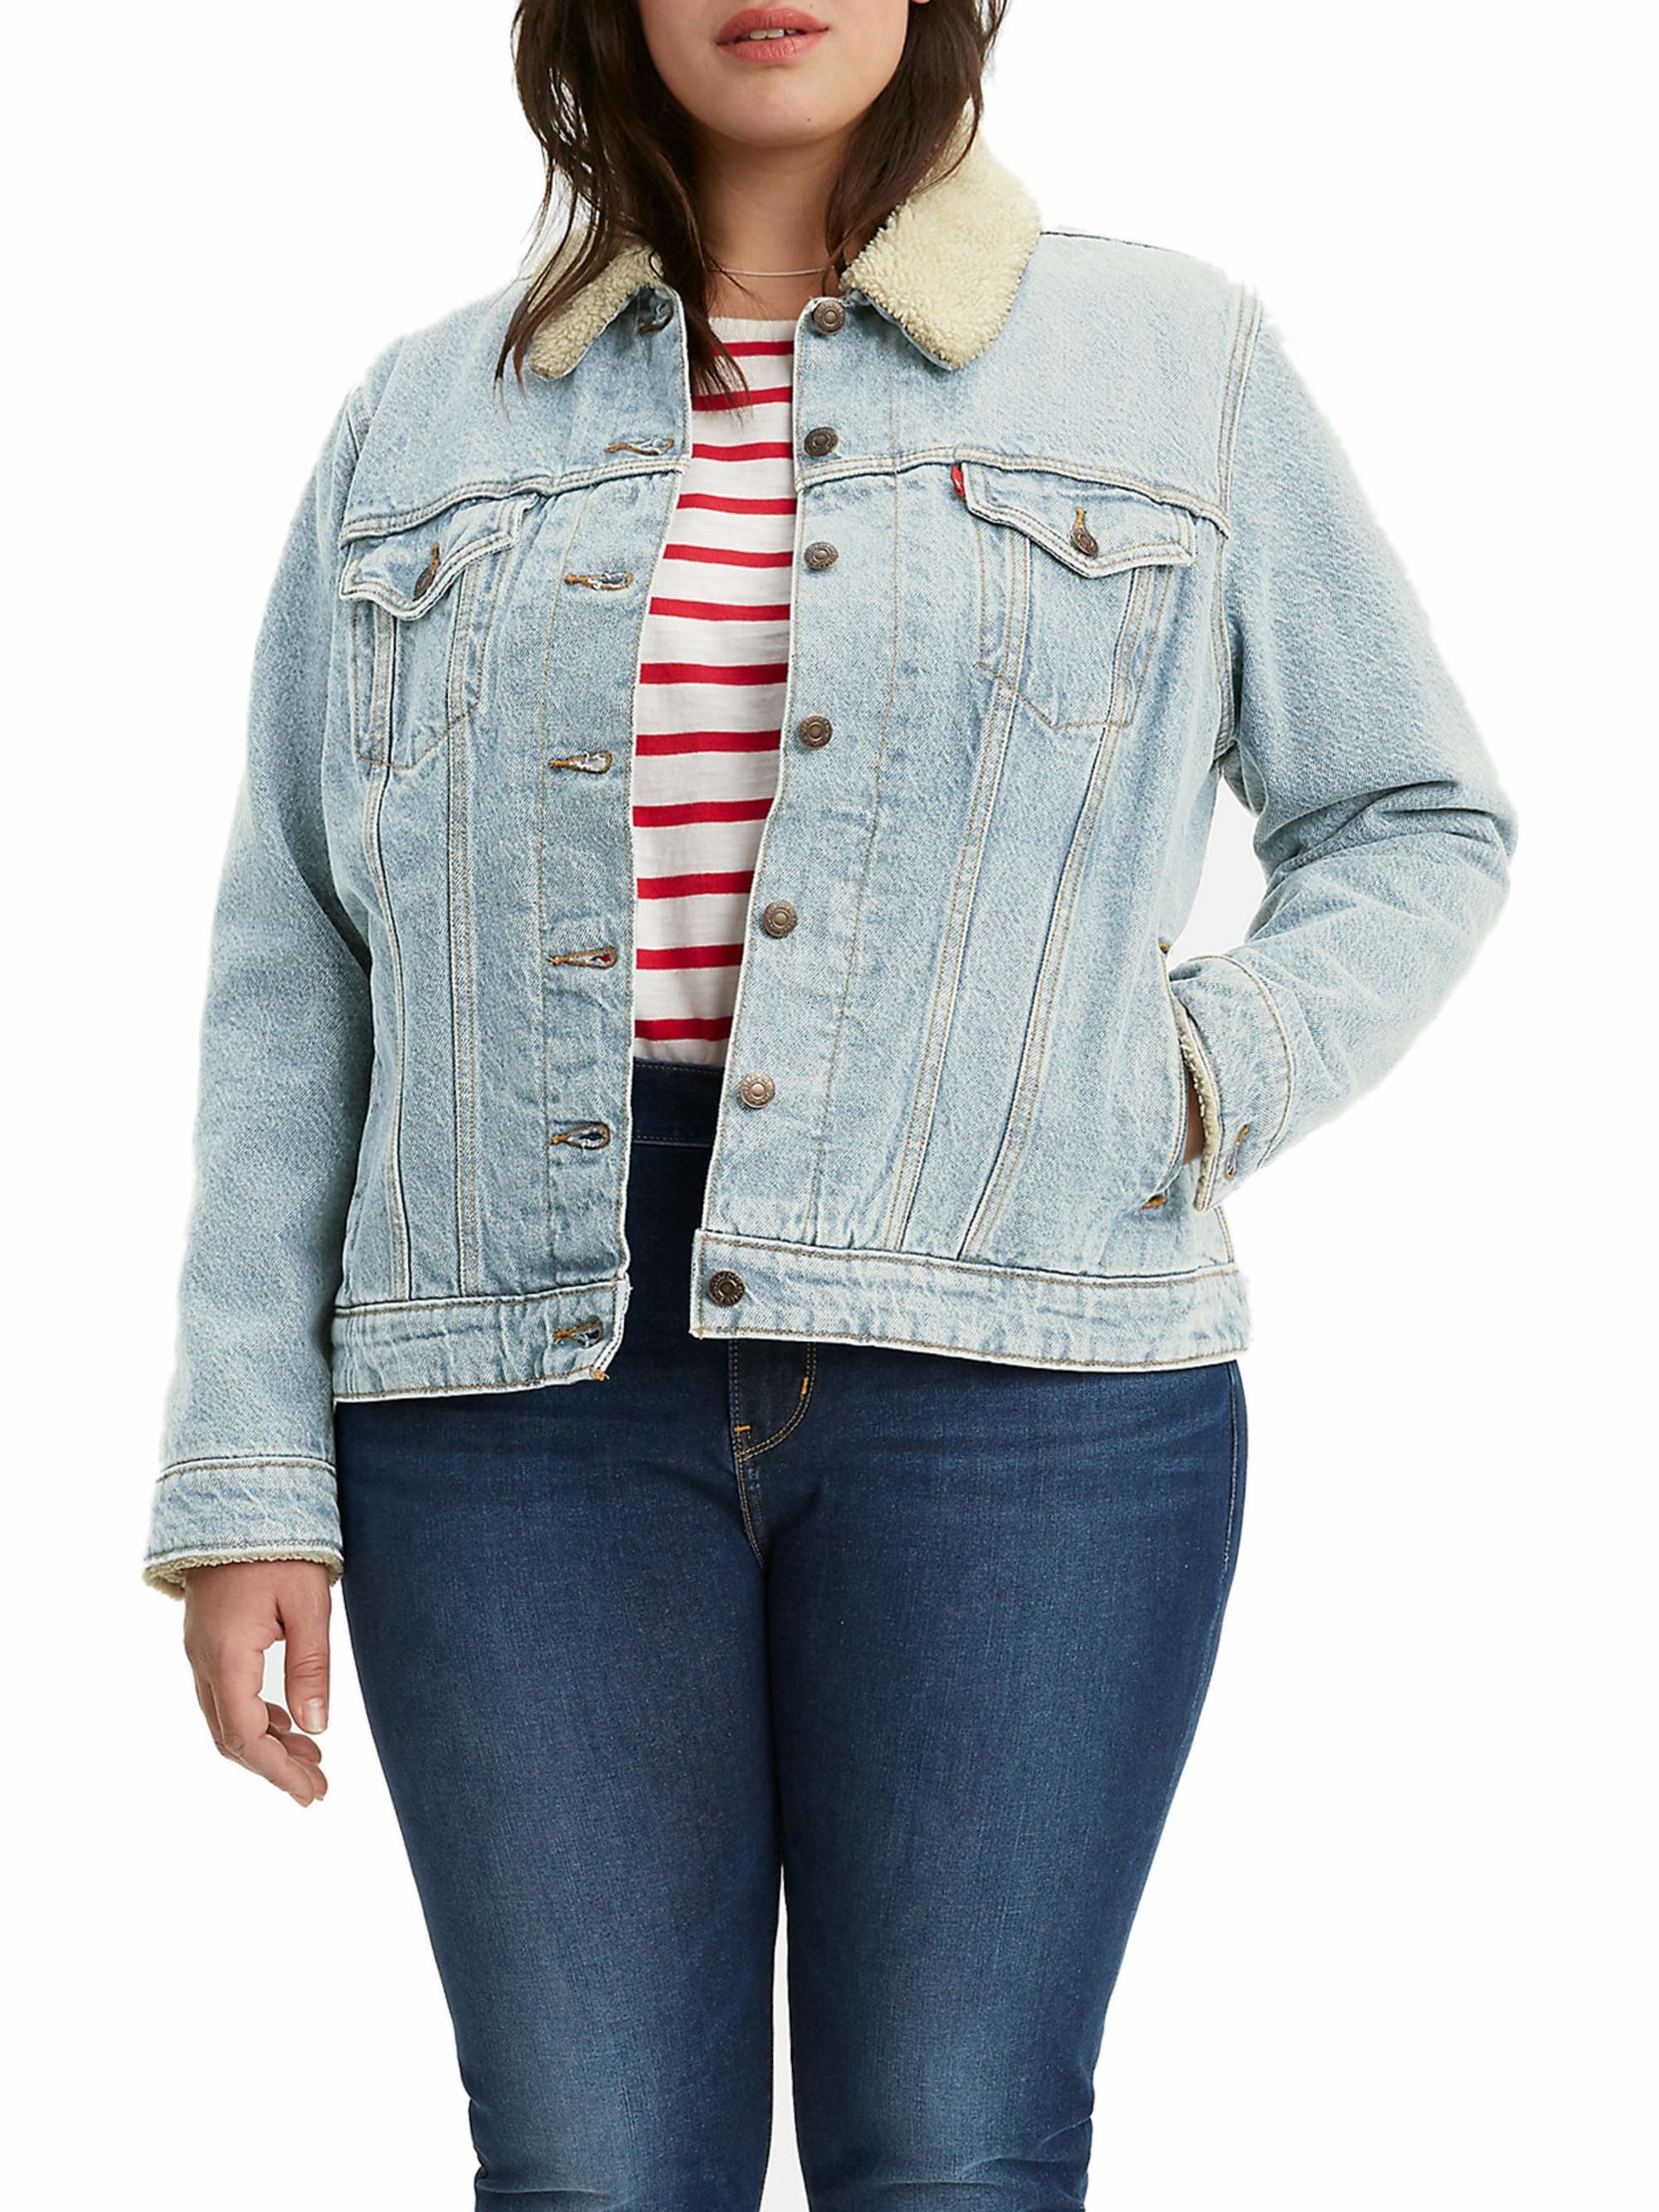 The sherpa lined jean jacket